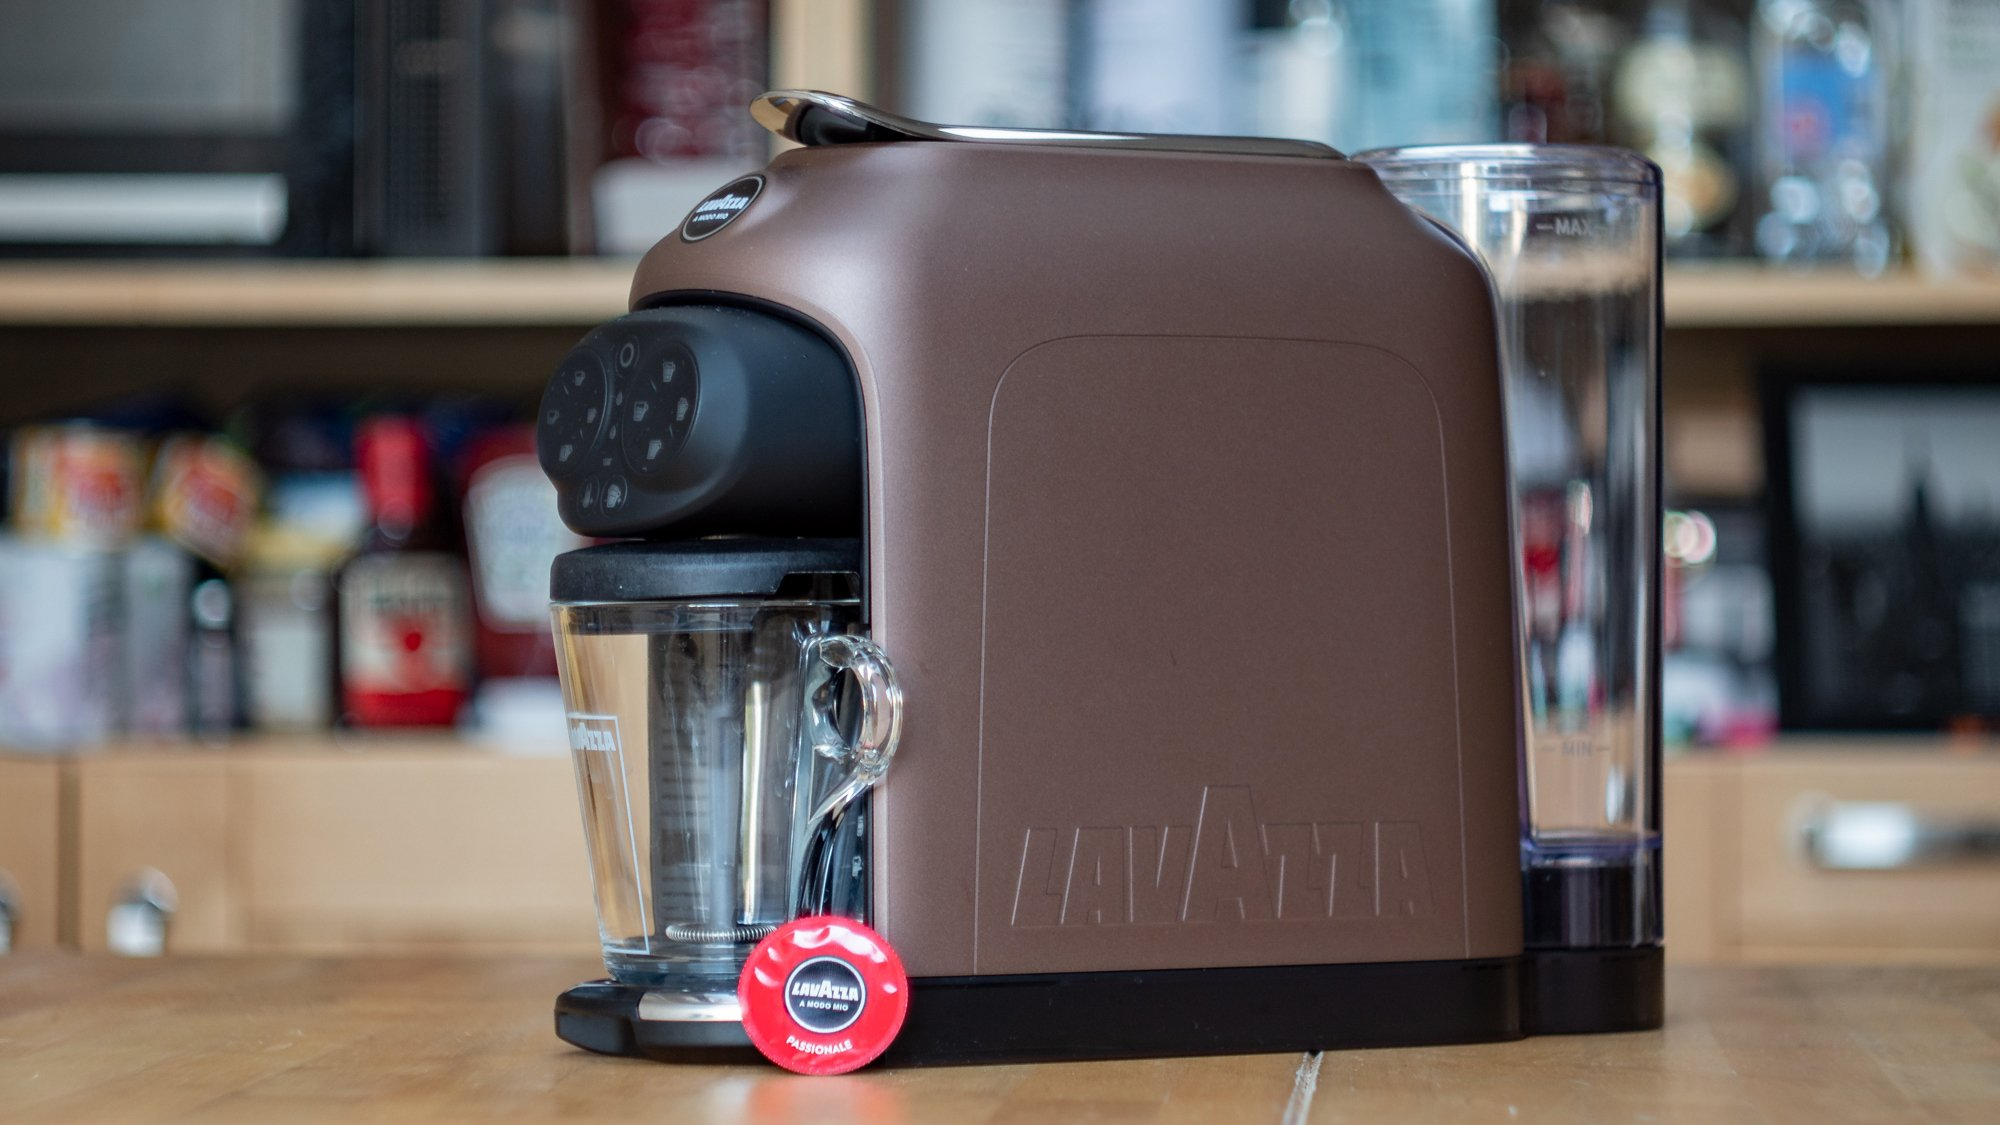 Lavazza Deséa review: Tasty coffee without the hassle